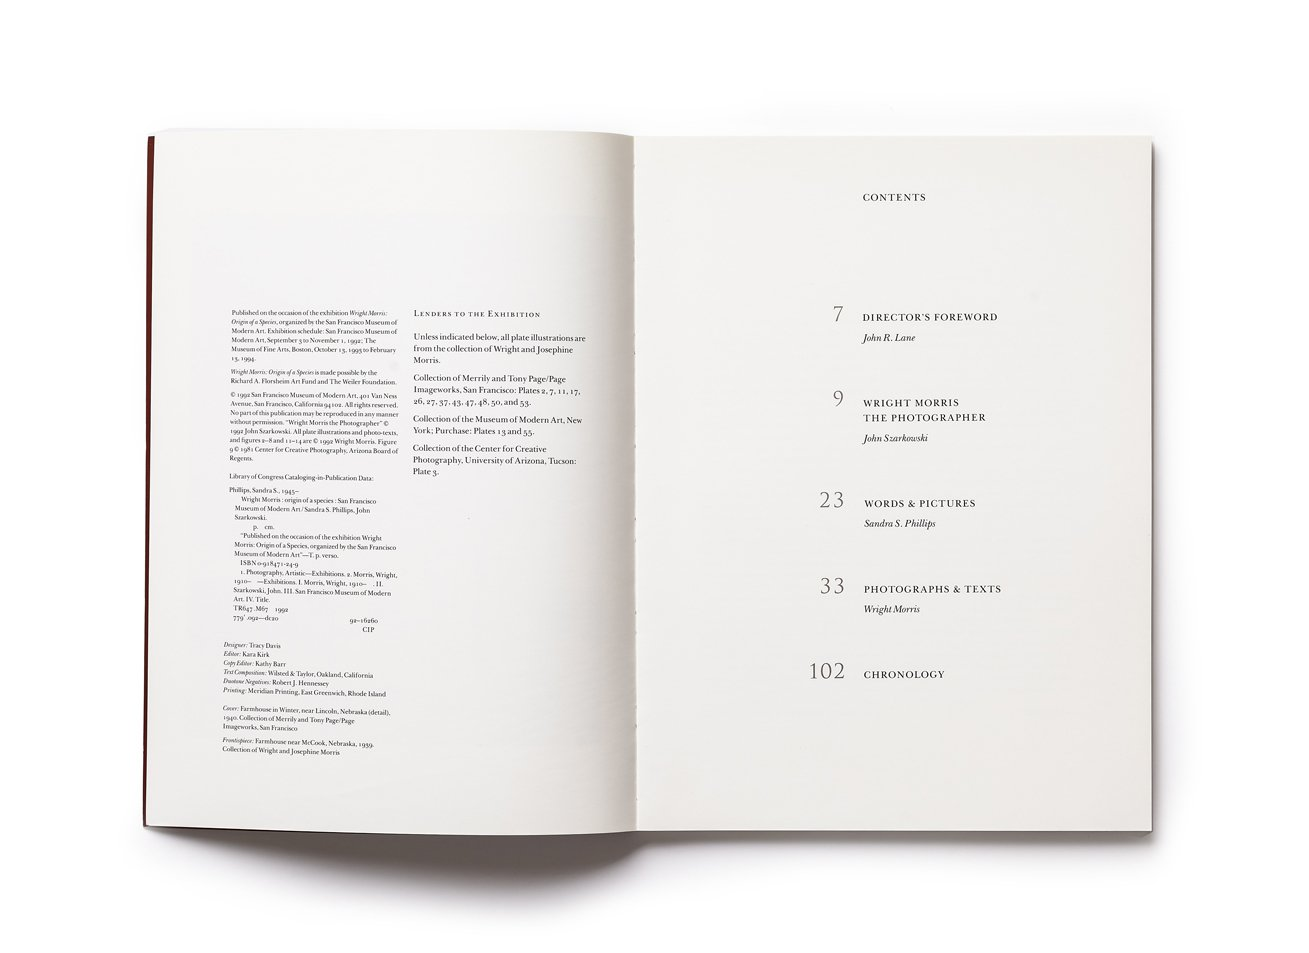 Wright Morris, contents